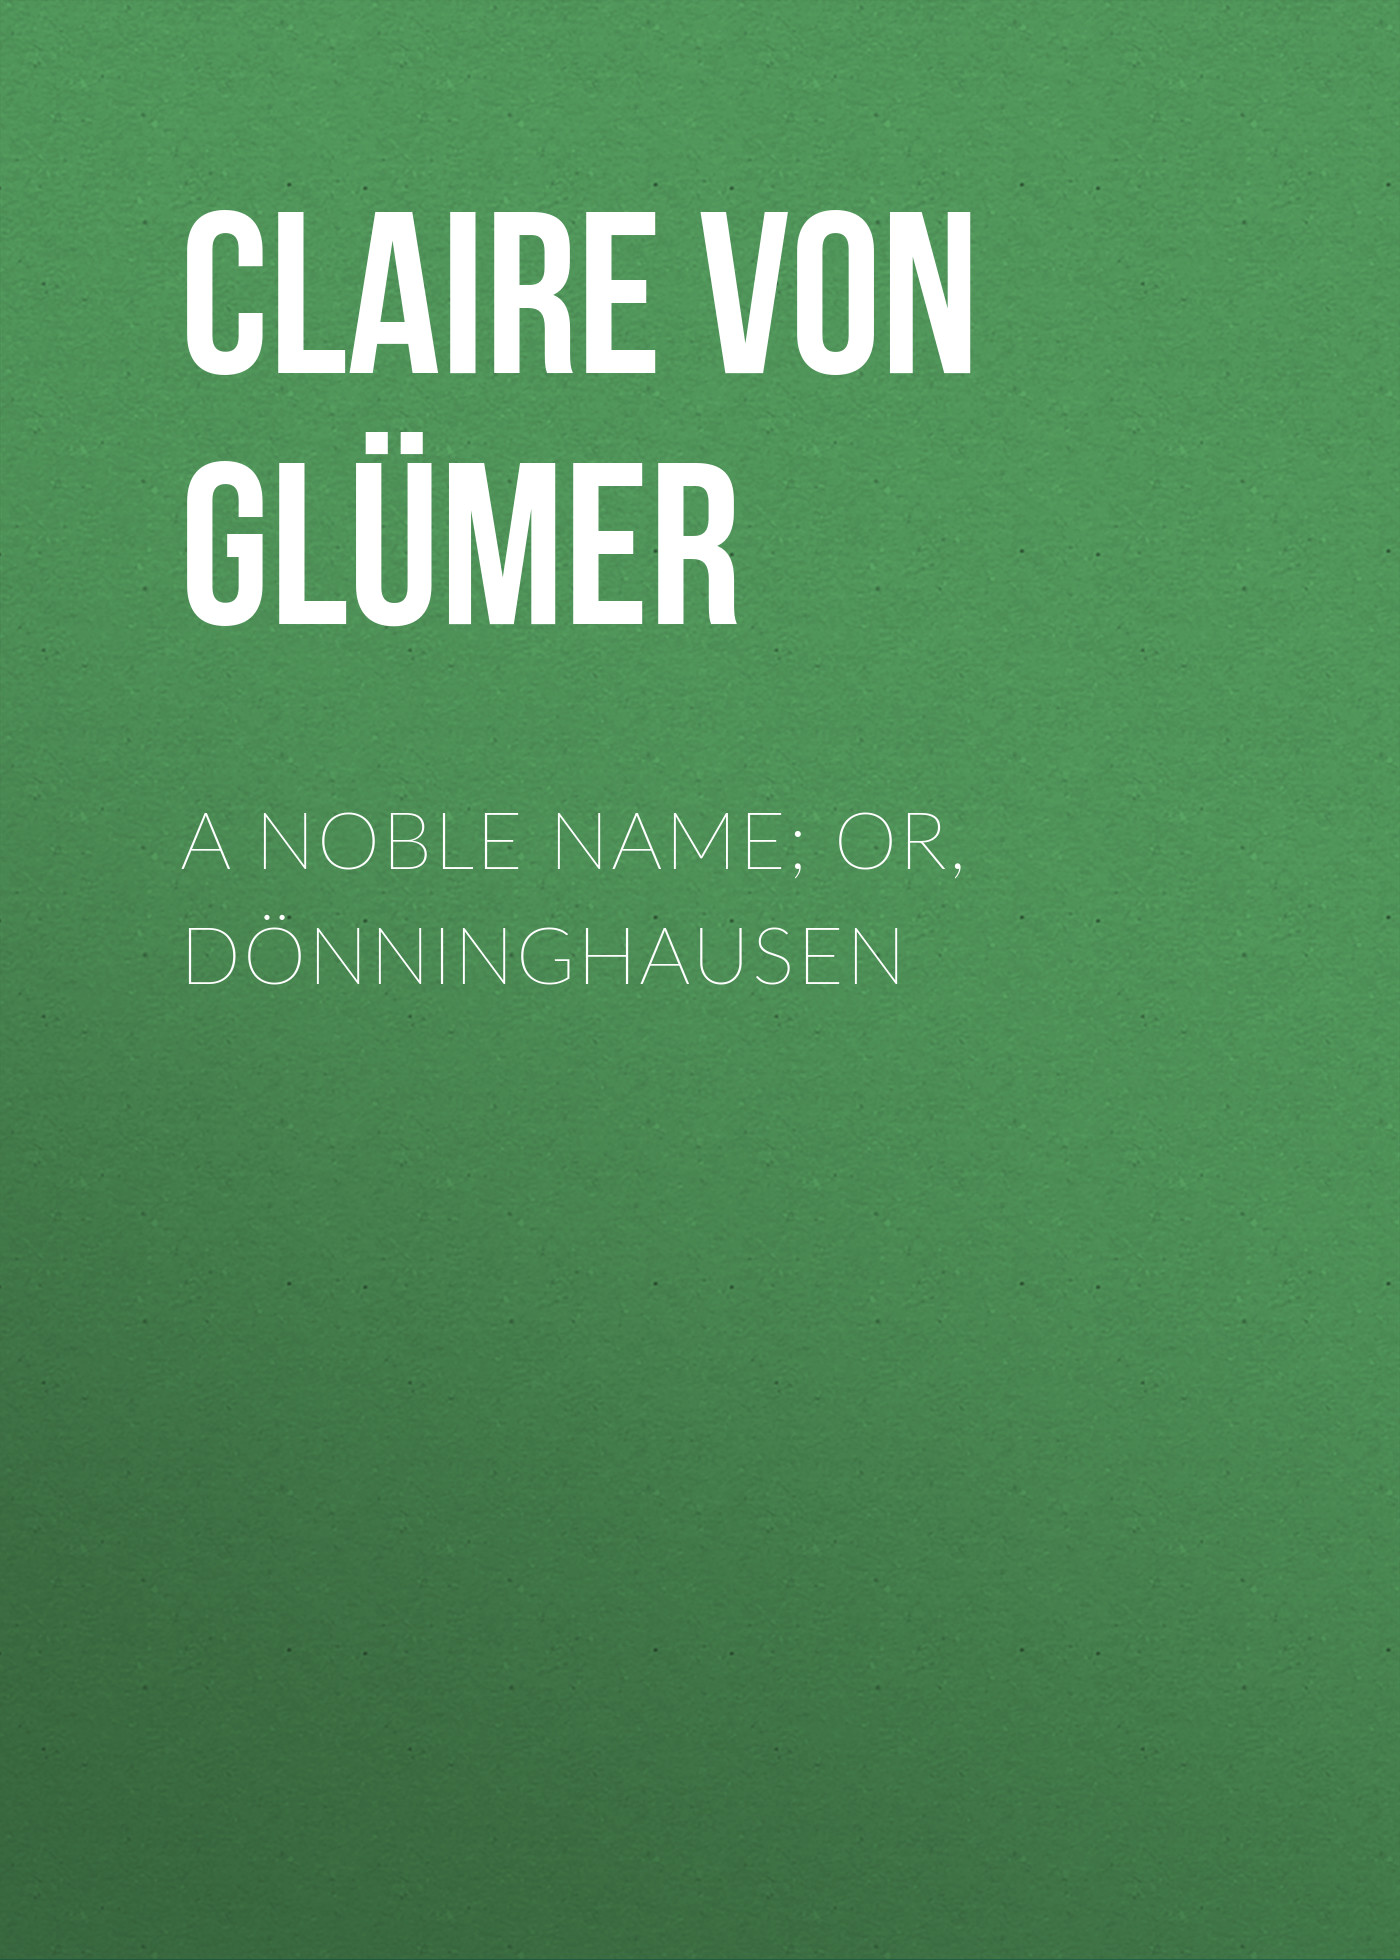 A Noble Name; or, Dönninghausen